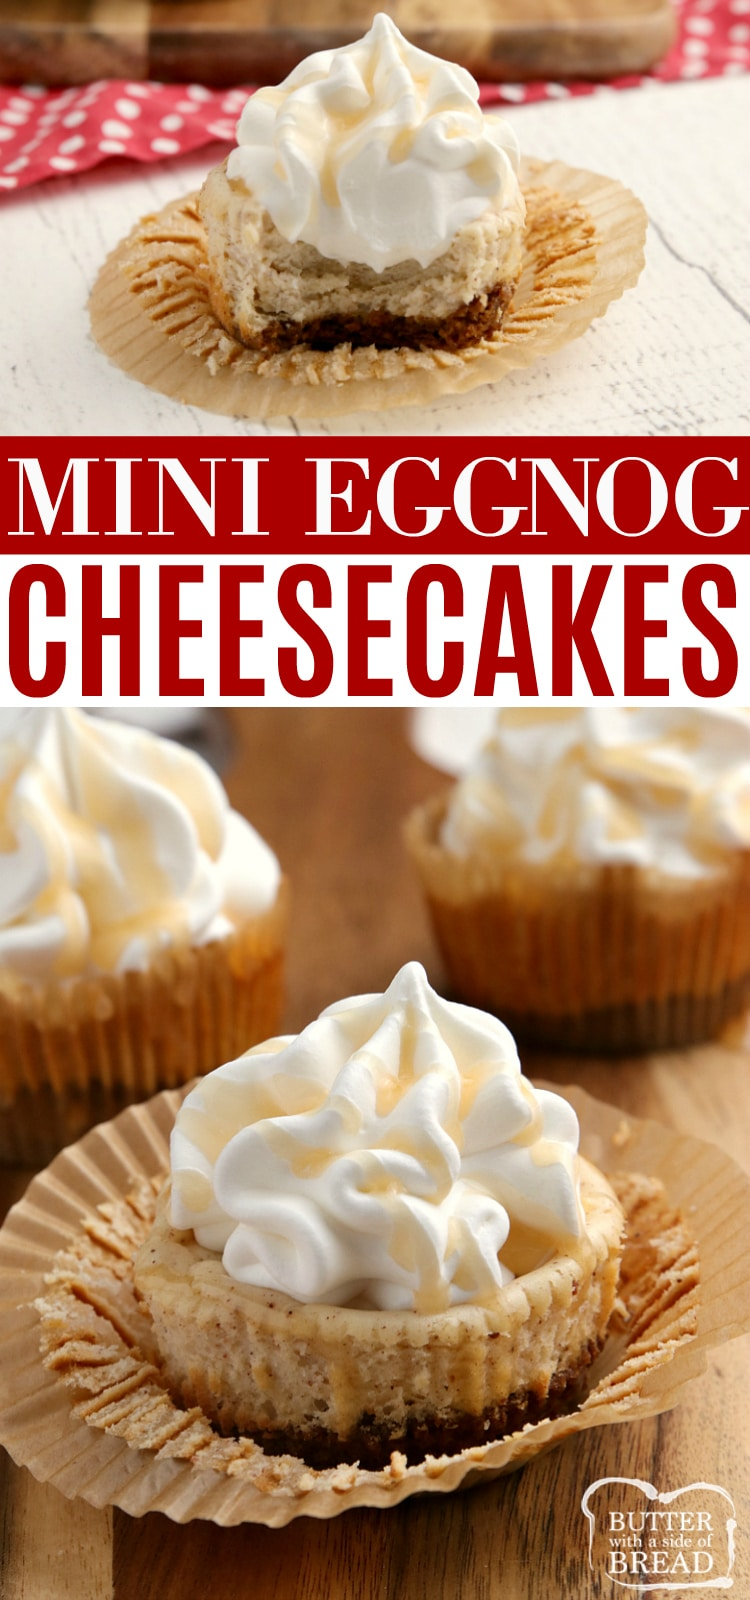 Mini Eggnog Cheesecakes with a creamy, spiced eggnog filling and a gingersnap cookie for the crust. Add some whipped cream and caramel topping for a mini cheesecake recipe that is absolutely delicious!